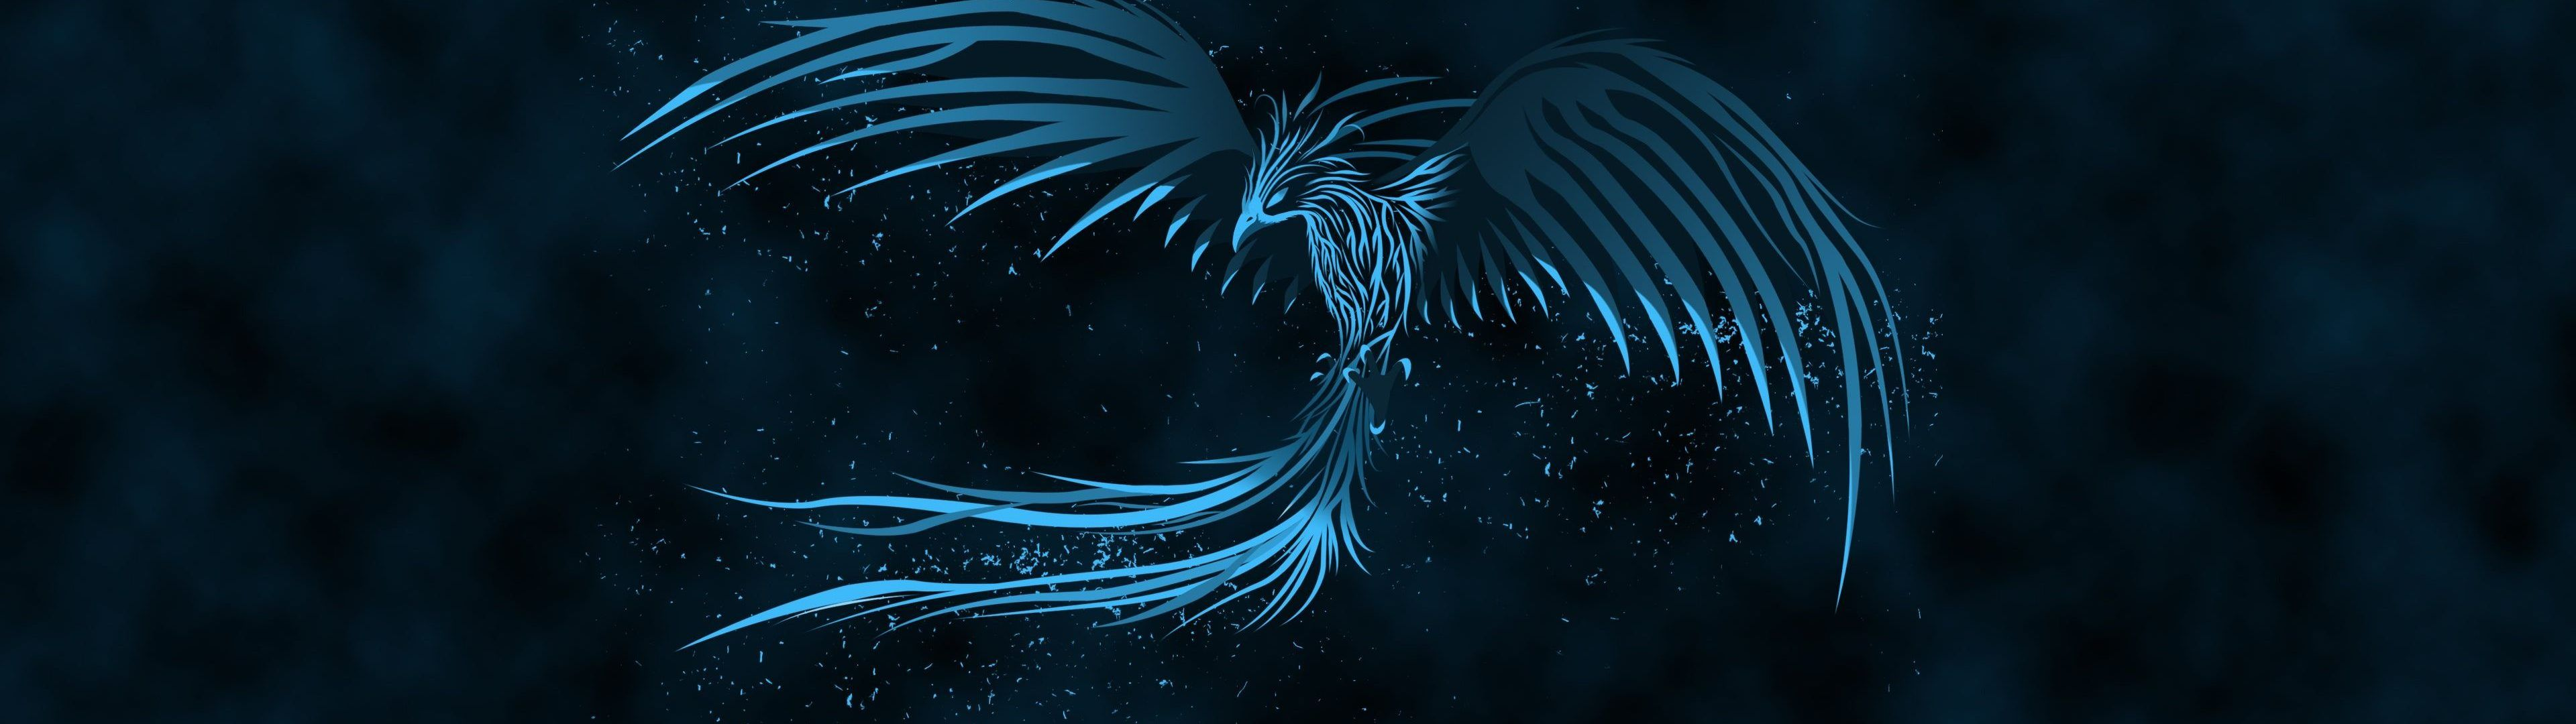 Blue Phoenix Dual Monitor Wallpaper 3840x1080 Dual Monitor